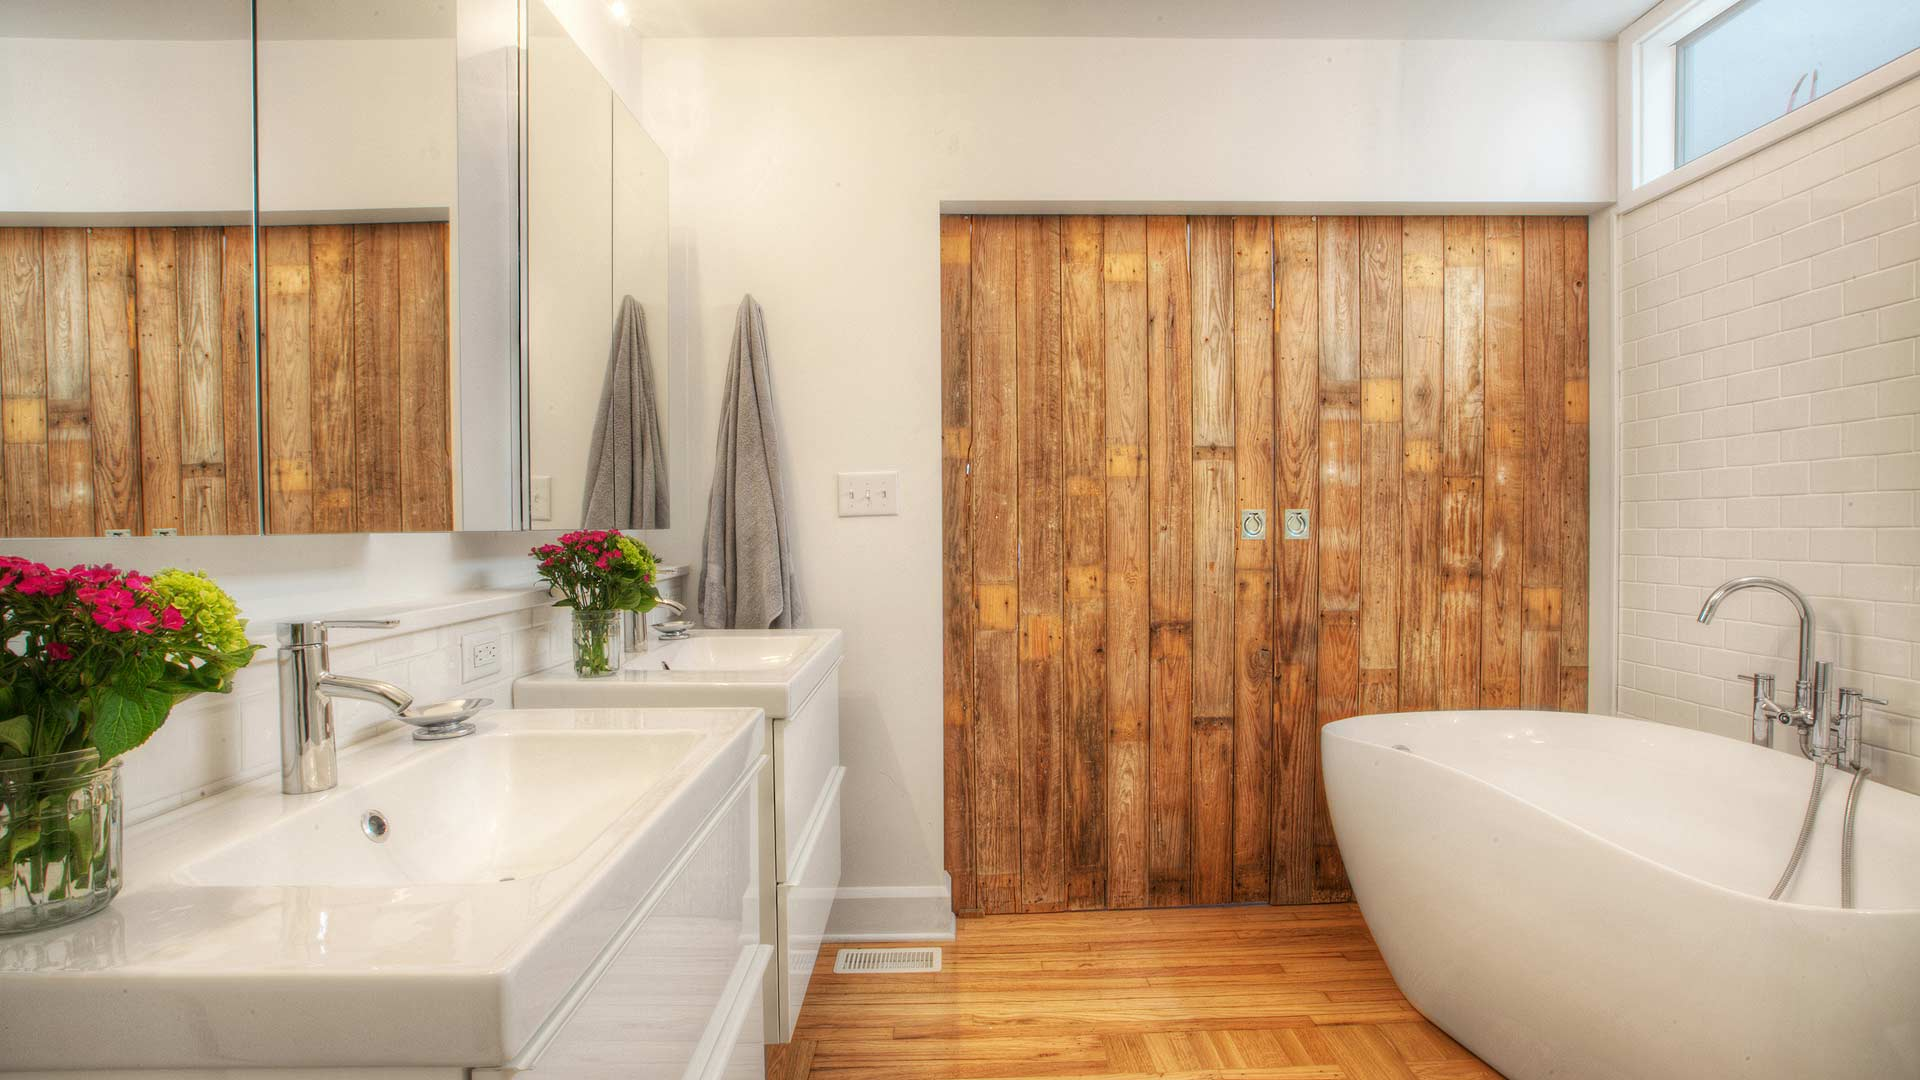 Master Bathroom opens directly to Master Bedroom via new custom barn doors. Wall hung vanities and freestanding tub coexist nicely, while clerestory window borrows light from skylit middle hallway - Broad Ripple Bungalow Phase 1 - Indianapolis, IN